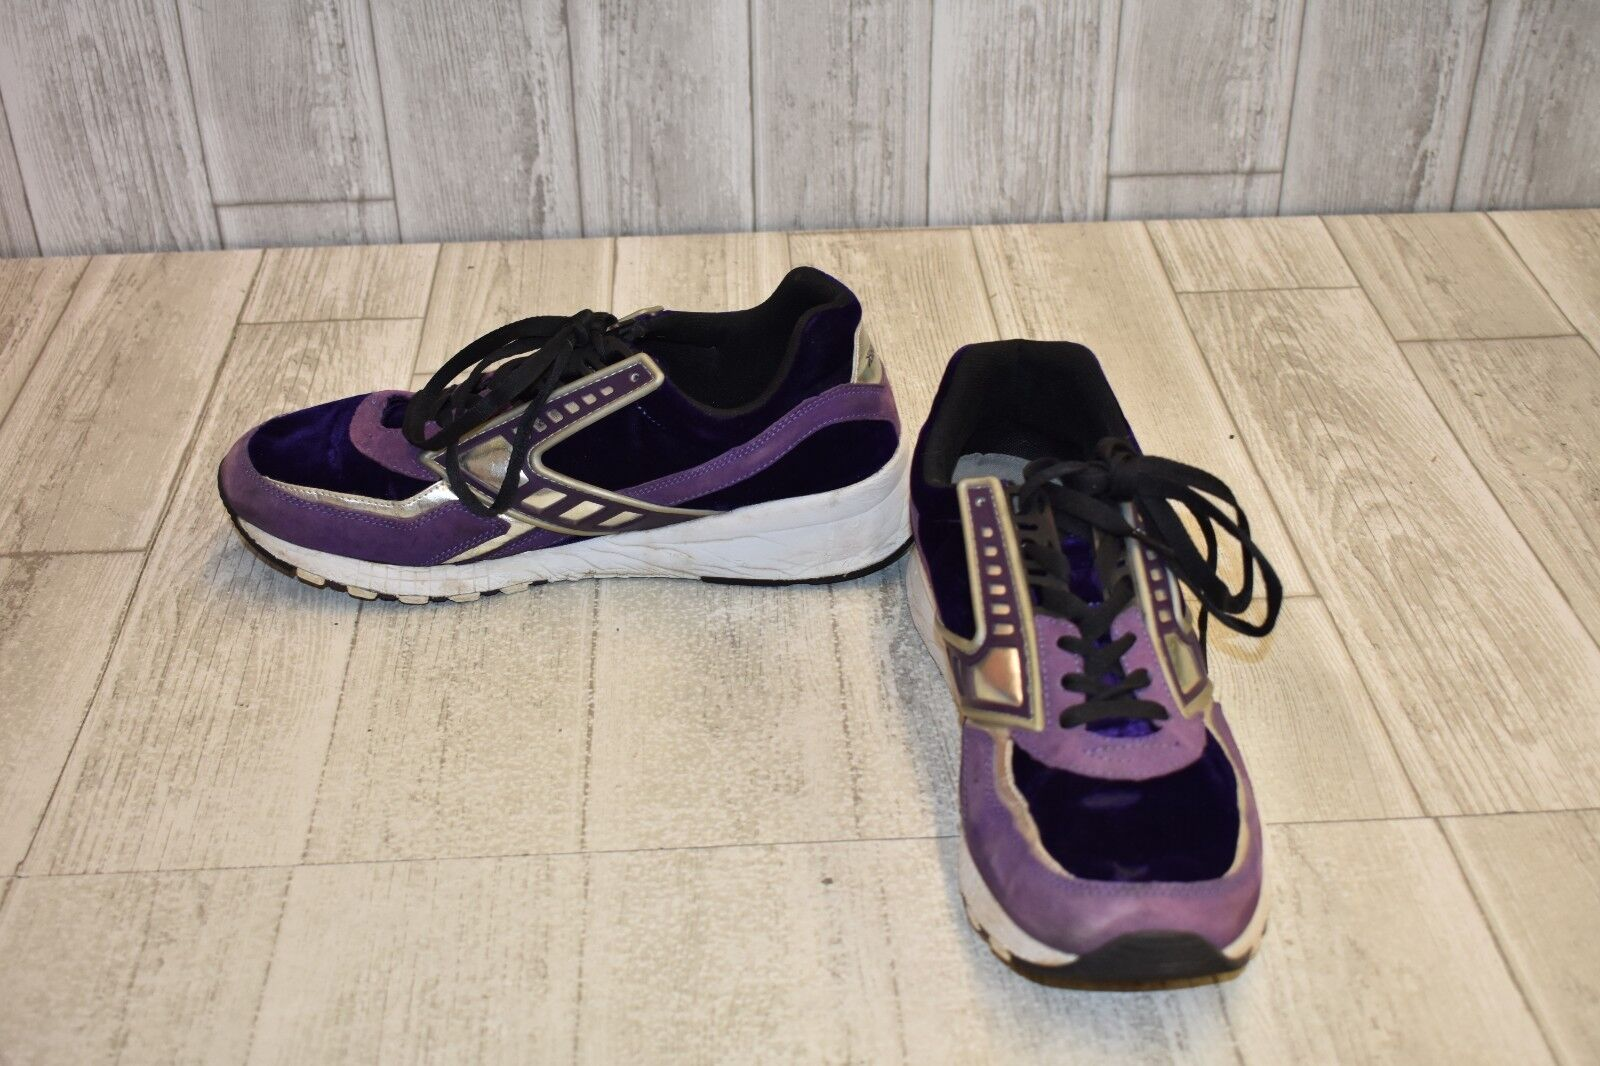 Brooks Regent Sneaker - Men's Size 11D Purple